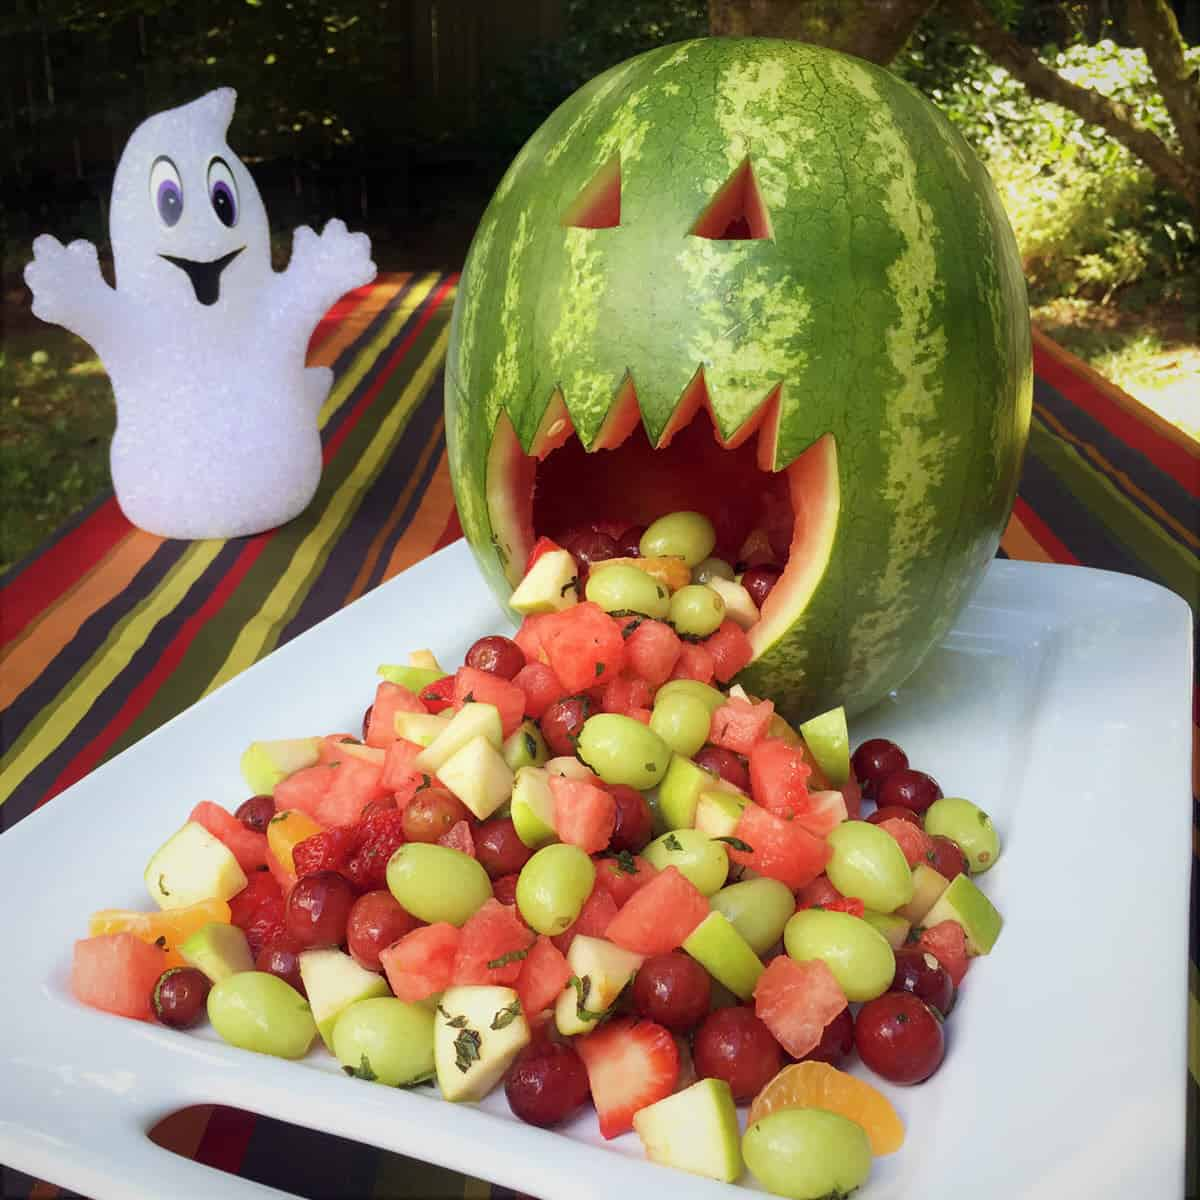 Carved watermelon jack-o-lantern resting upright on a large plate with fruit spilling out its mouth and down the plate.